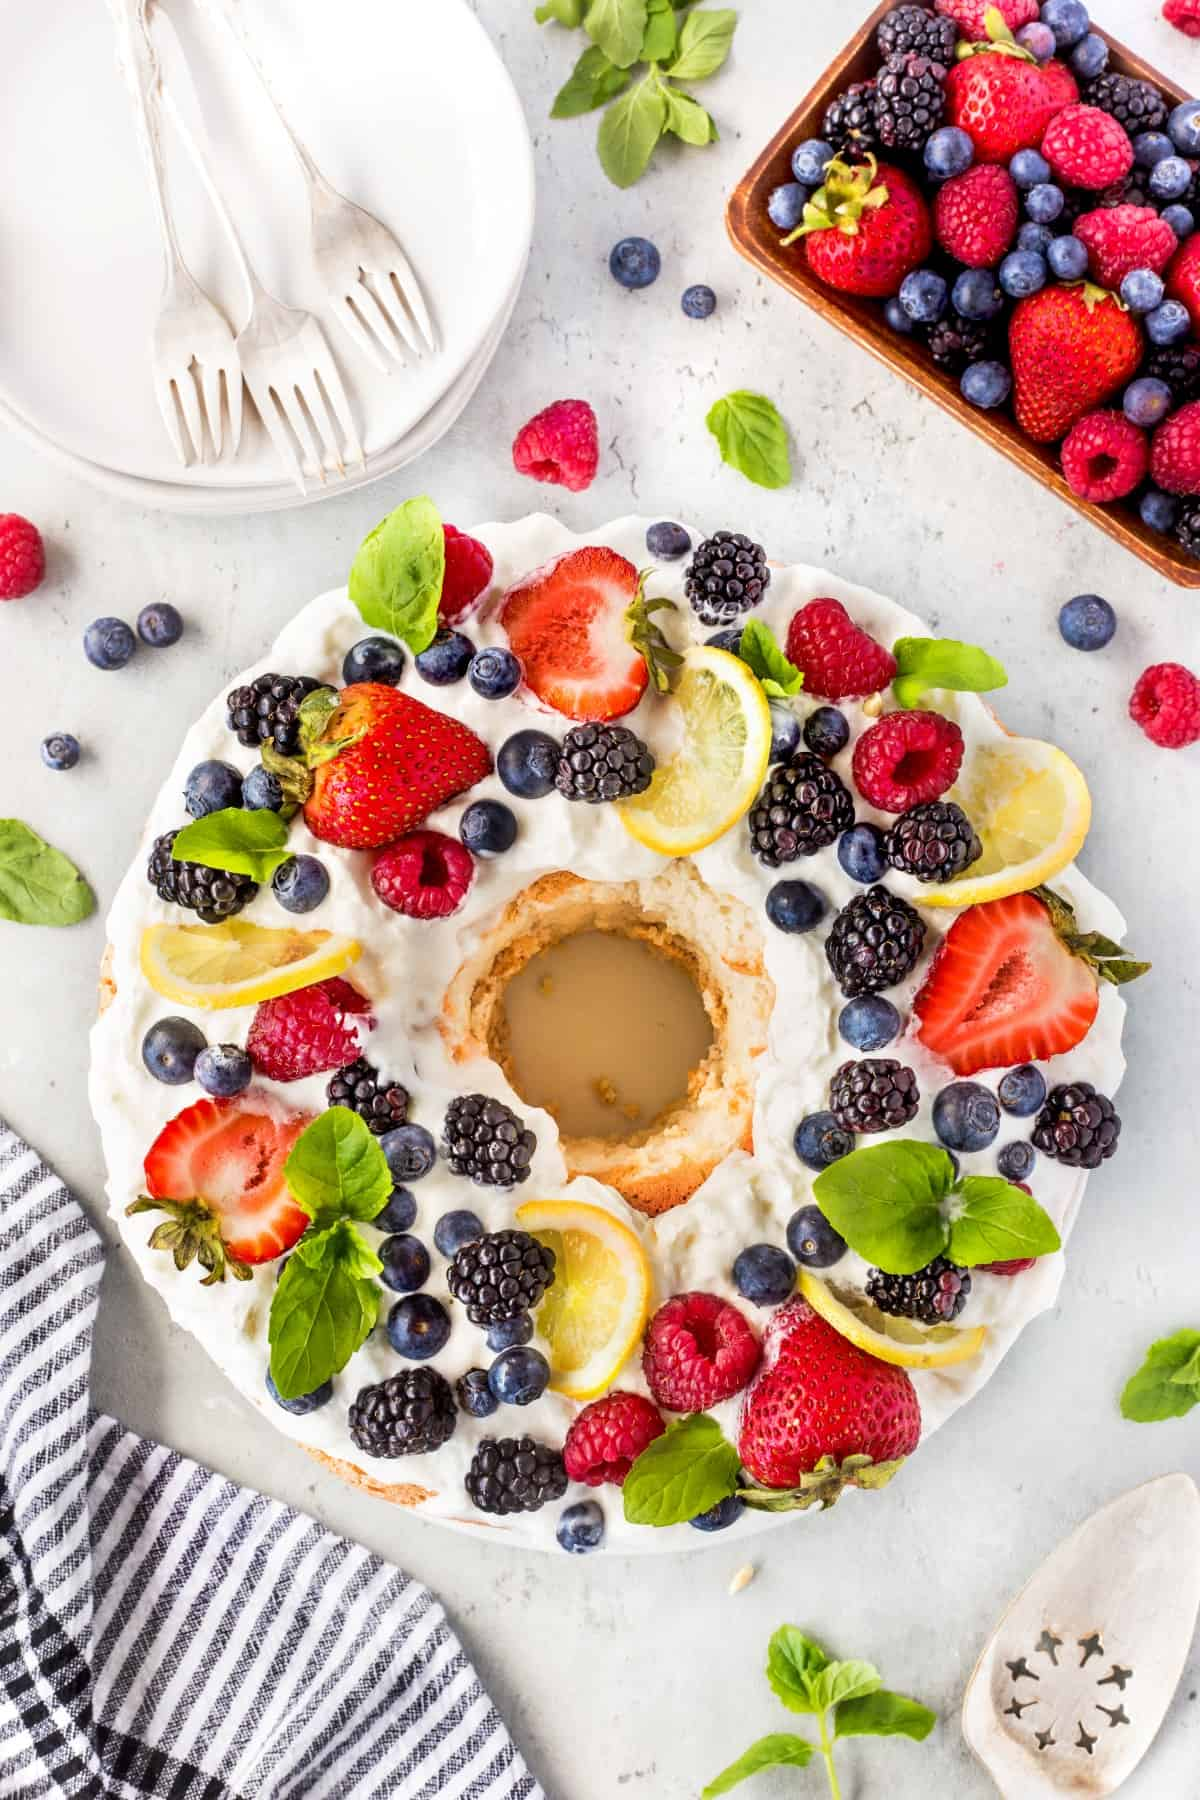 Fully decorated angel food cake